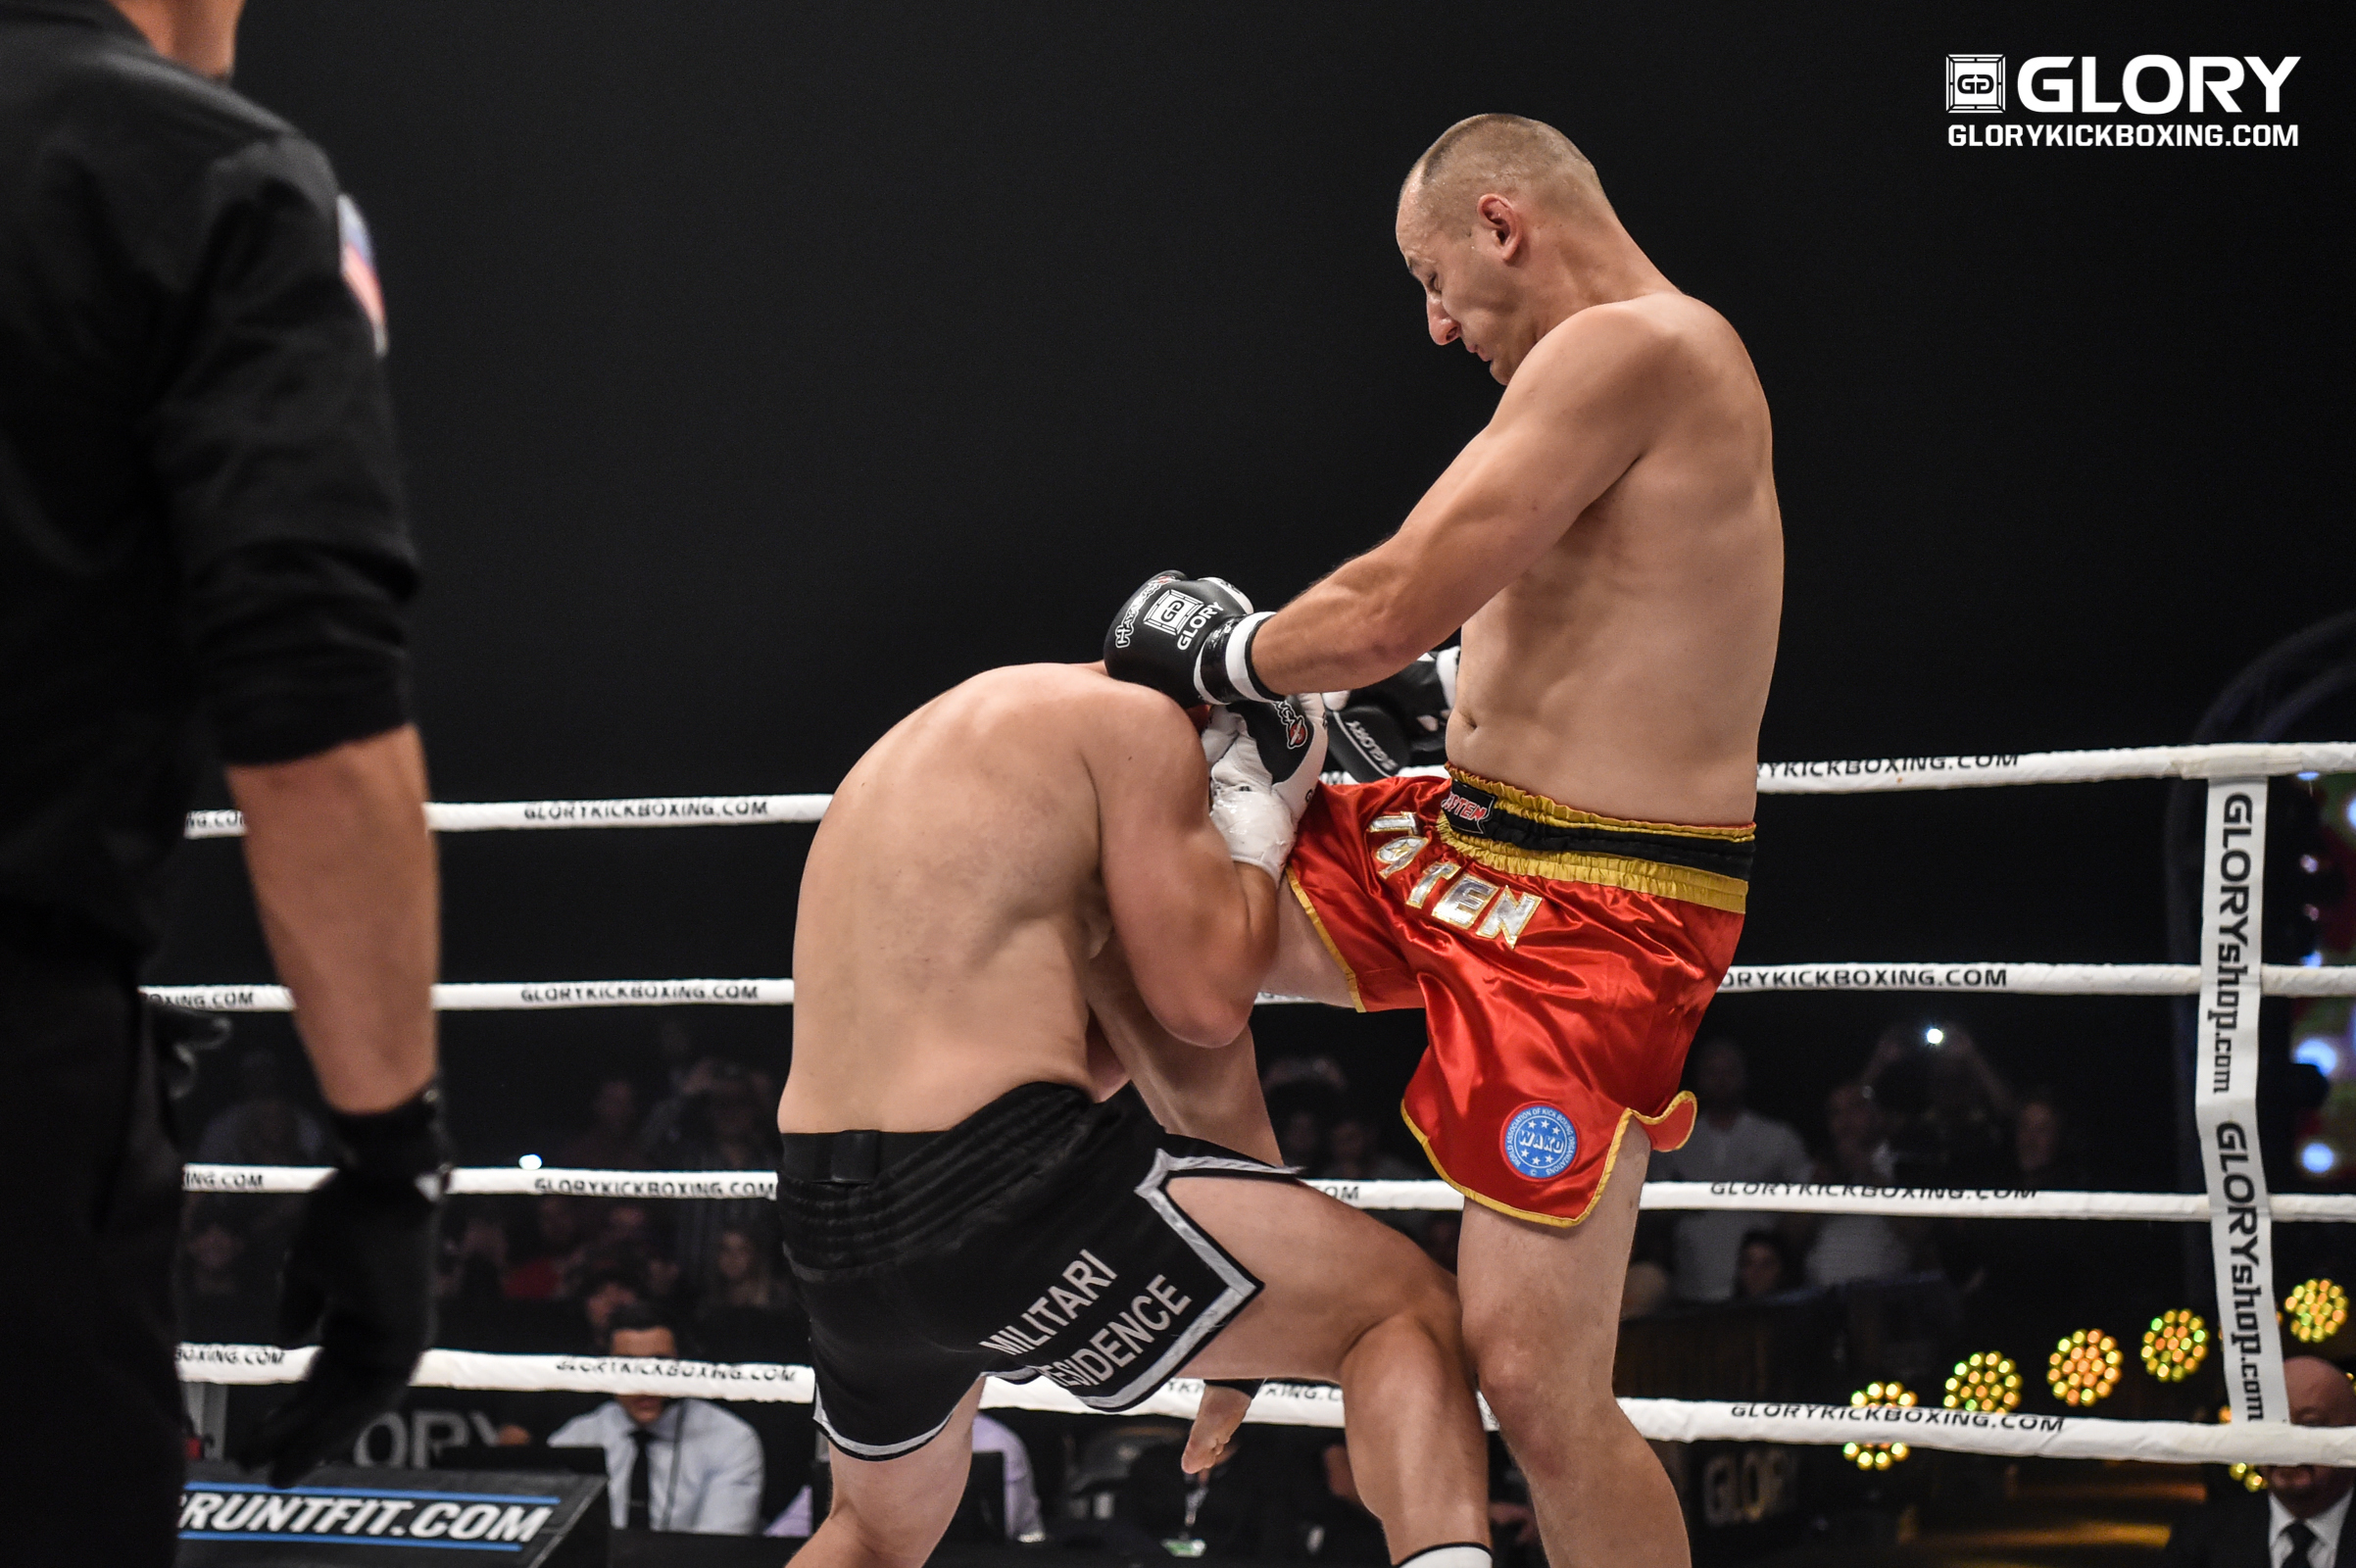 Morosanu drops decision to Turynski after heavyweight war